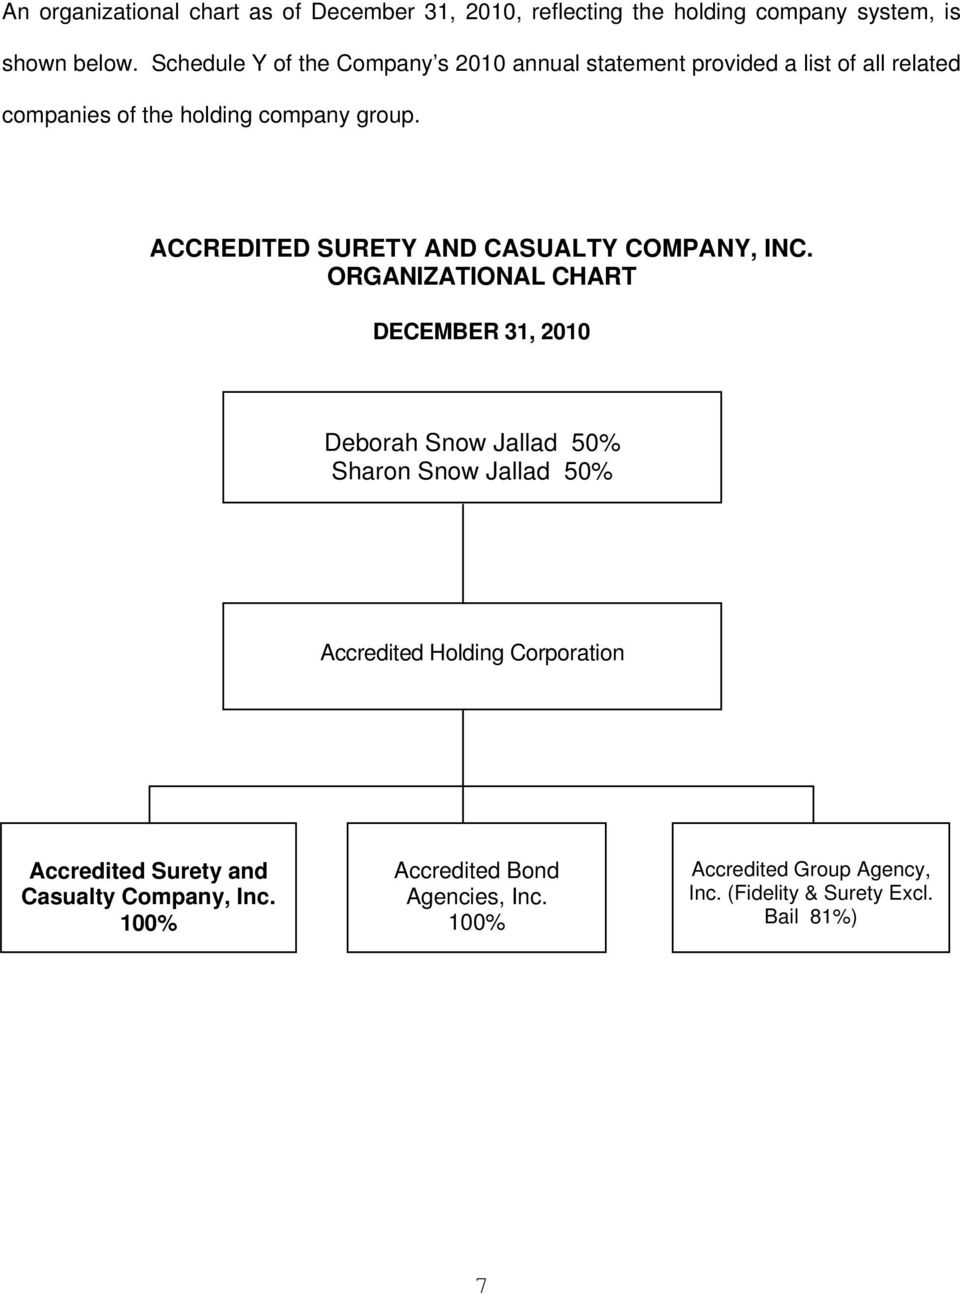 ACCREDITED SURETY AND CASUALTY COMPANY, INC.